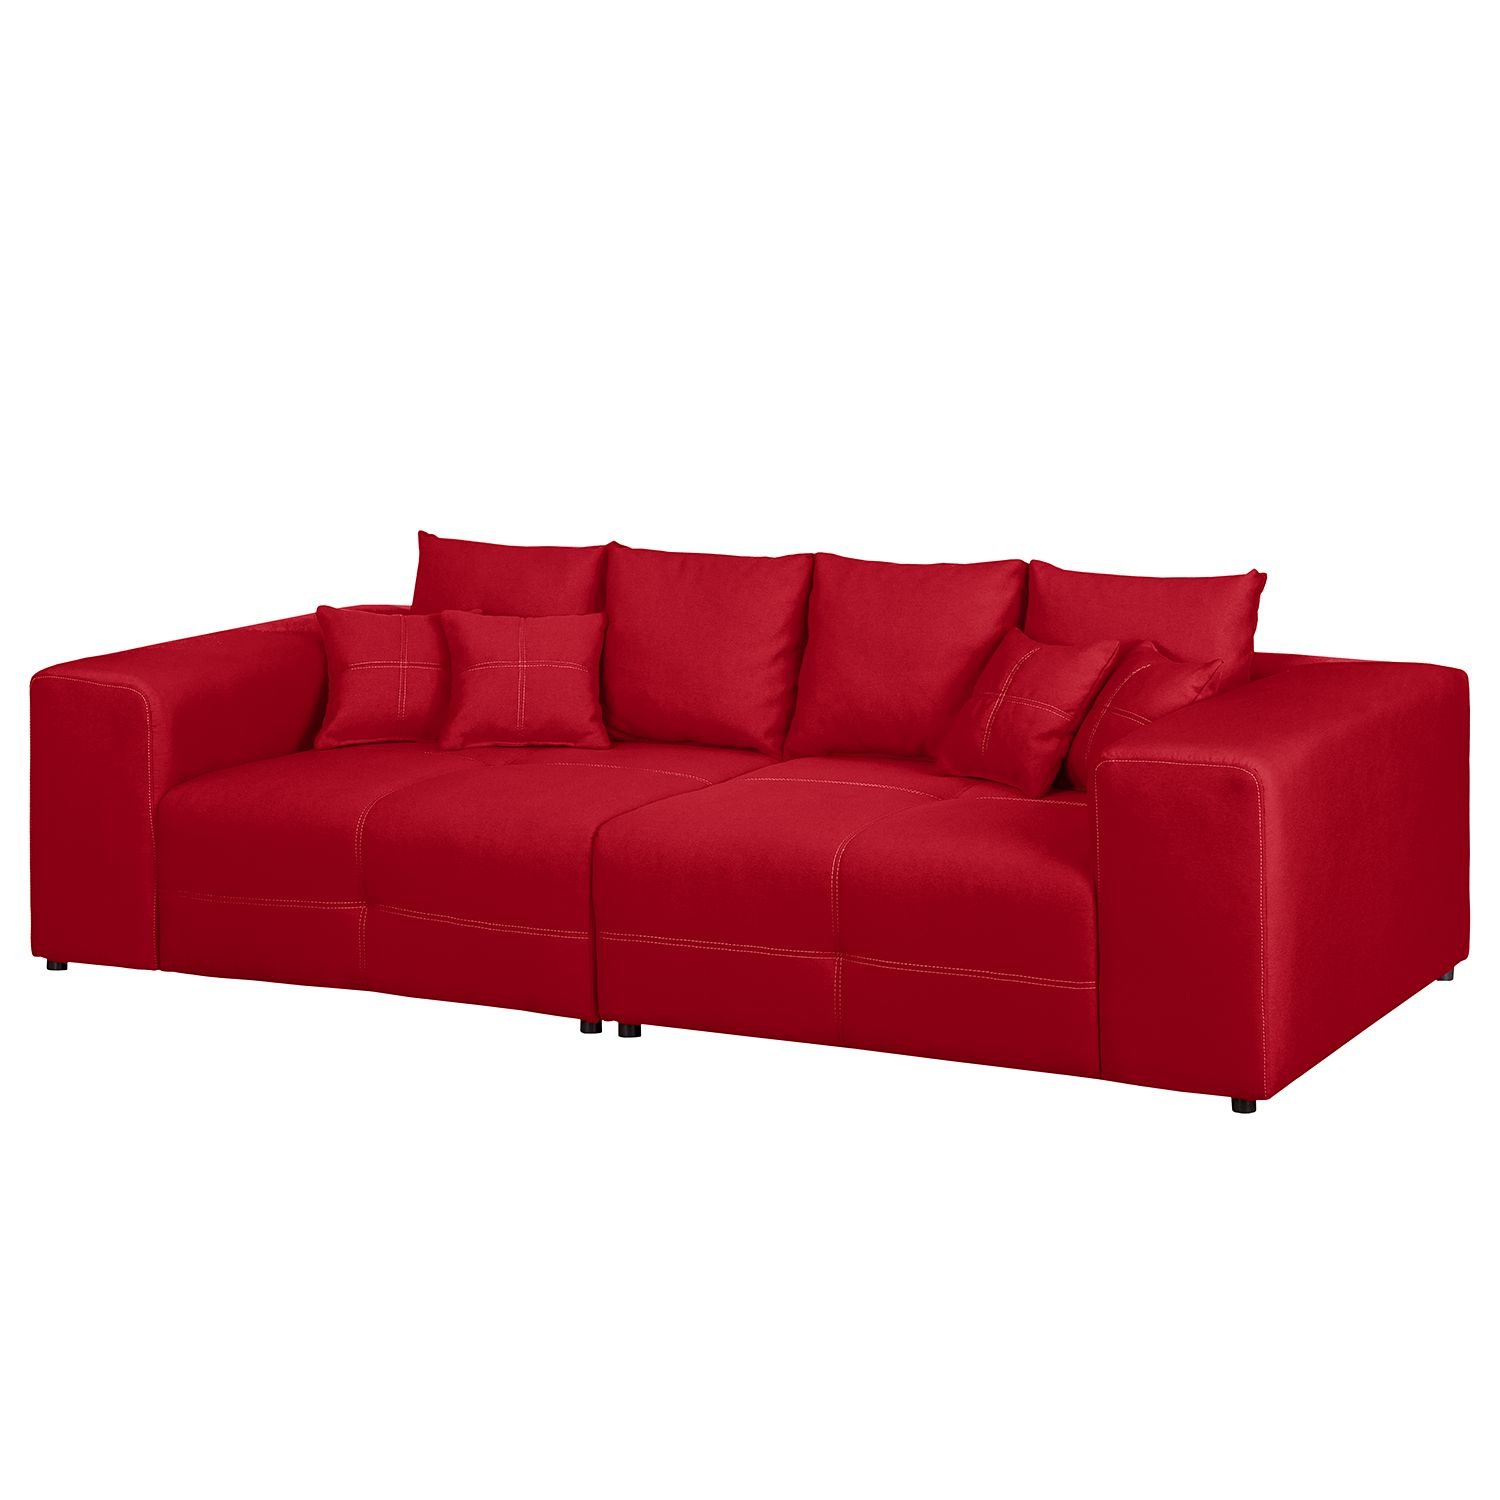 home24 Bigsofa North Star Webstoff